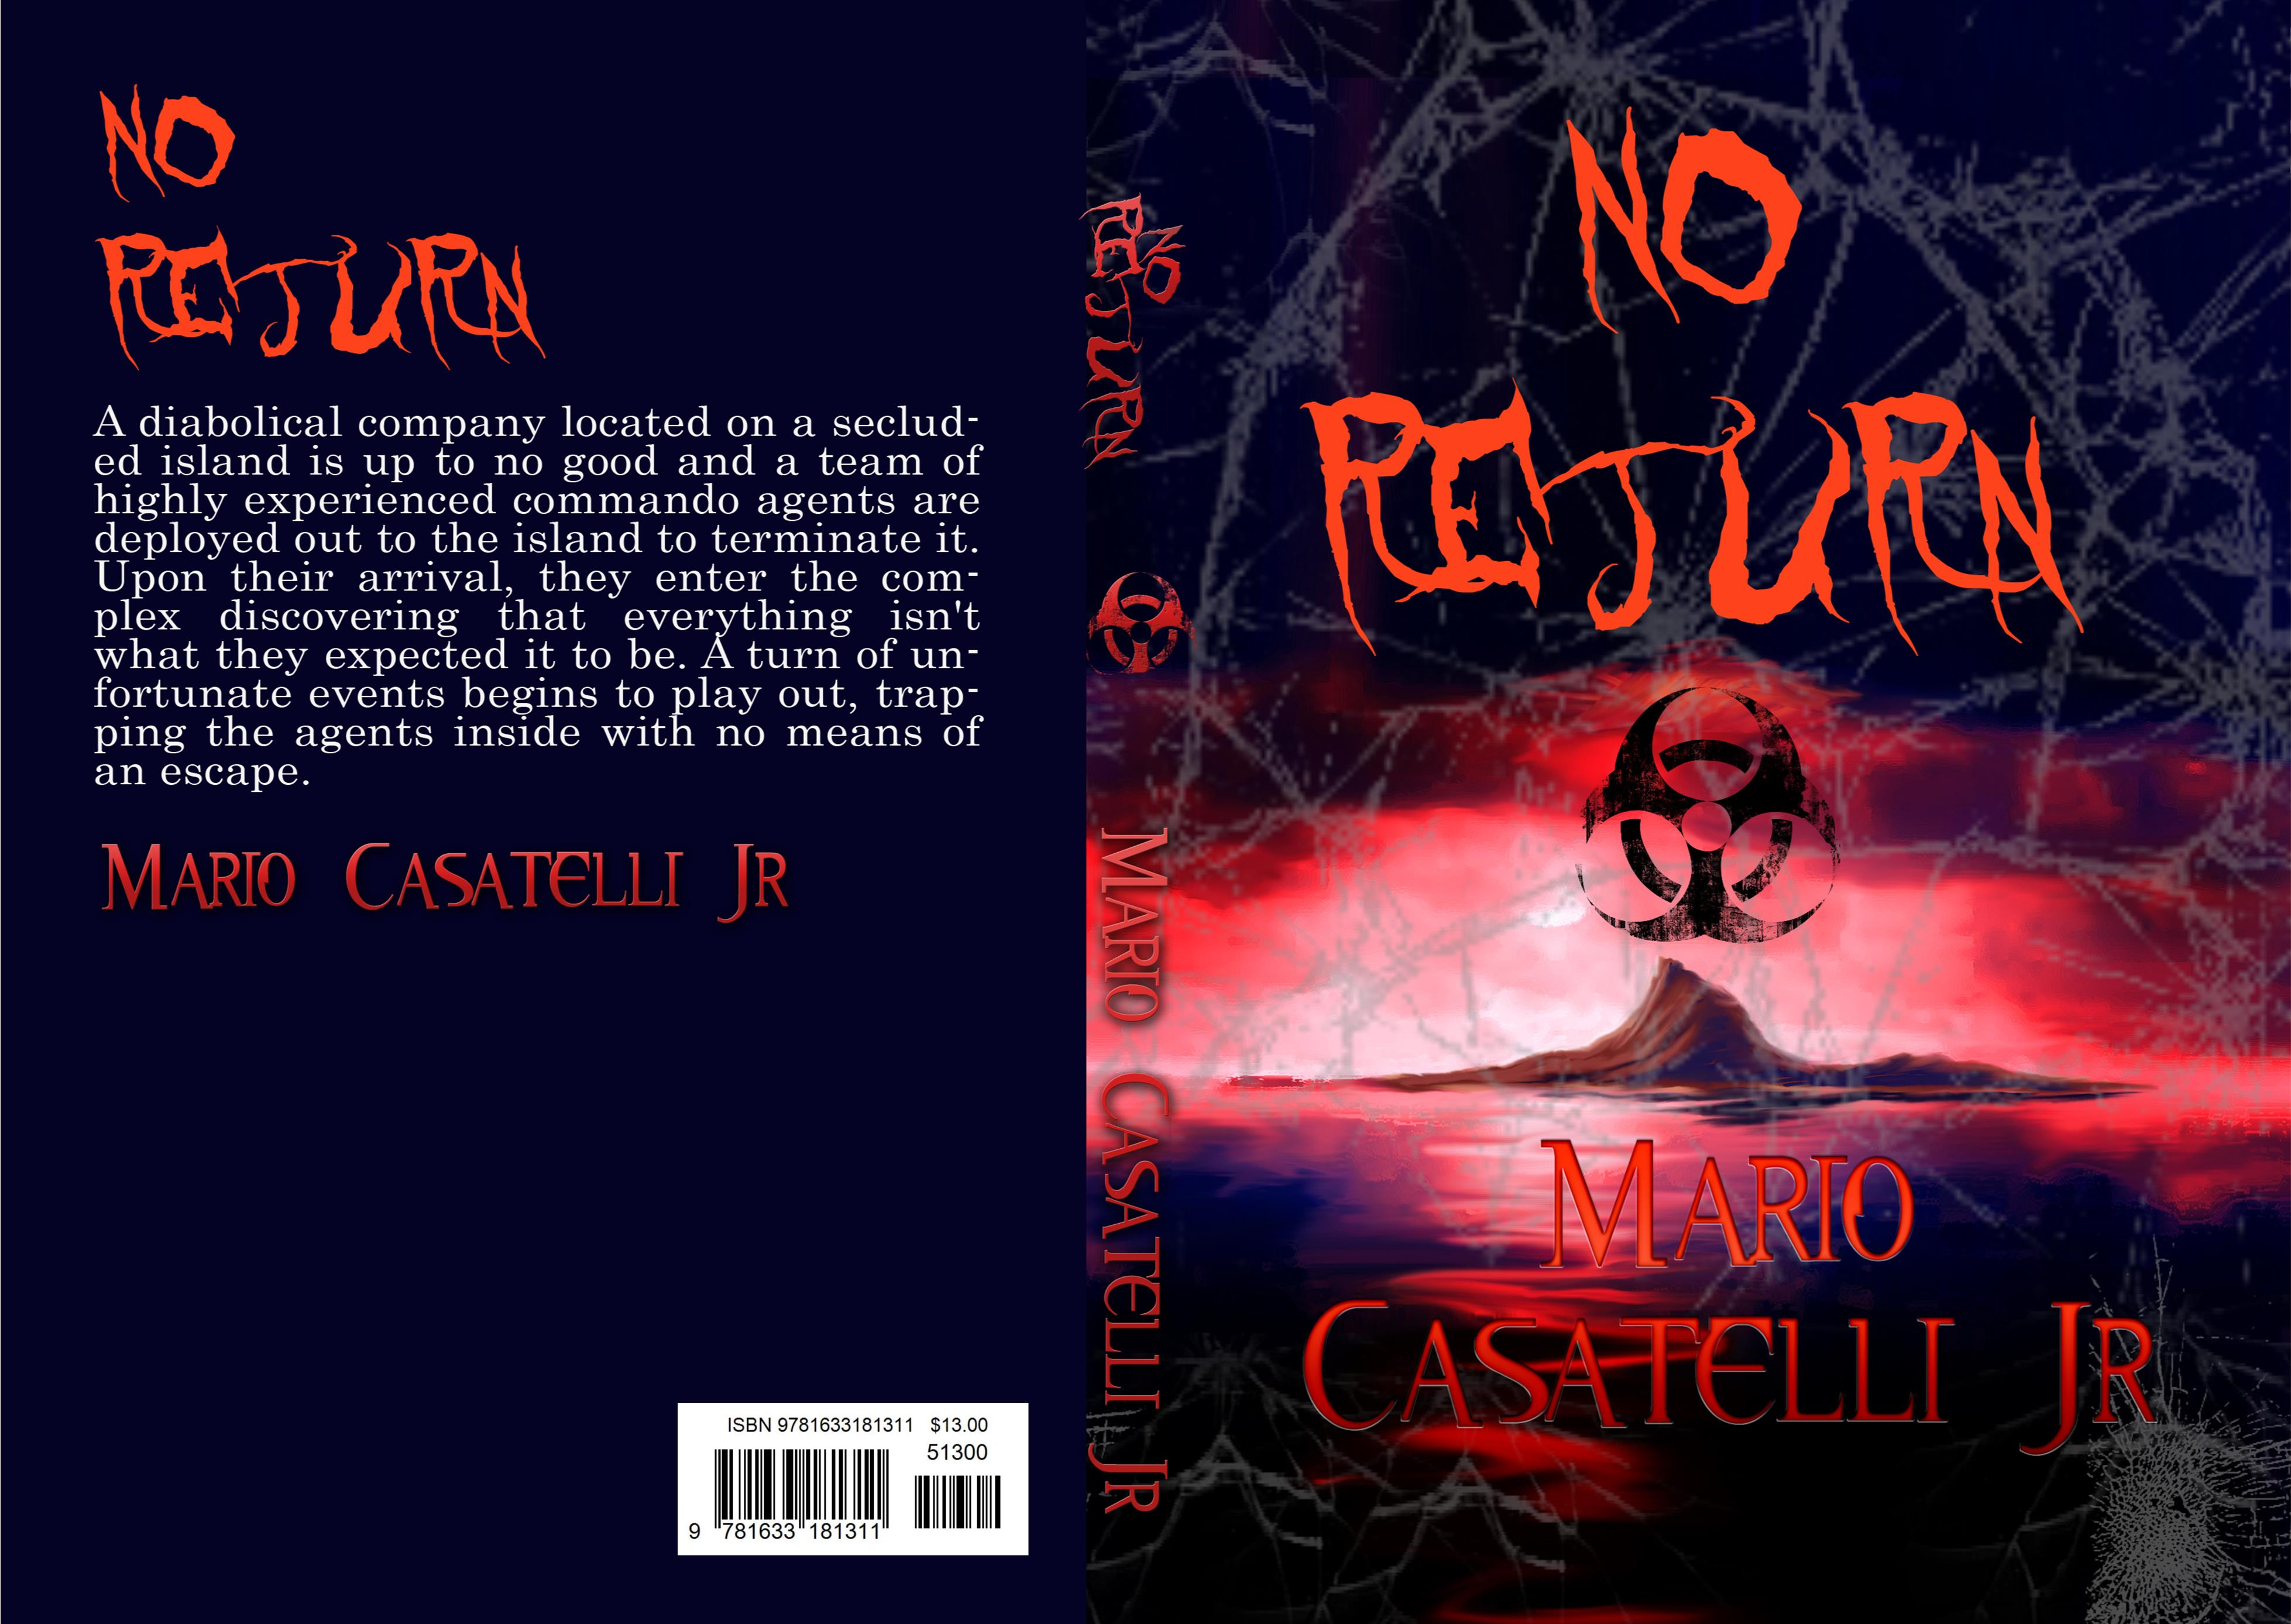 No Return cover image